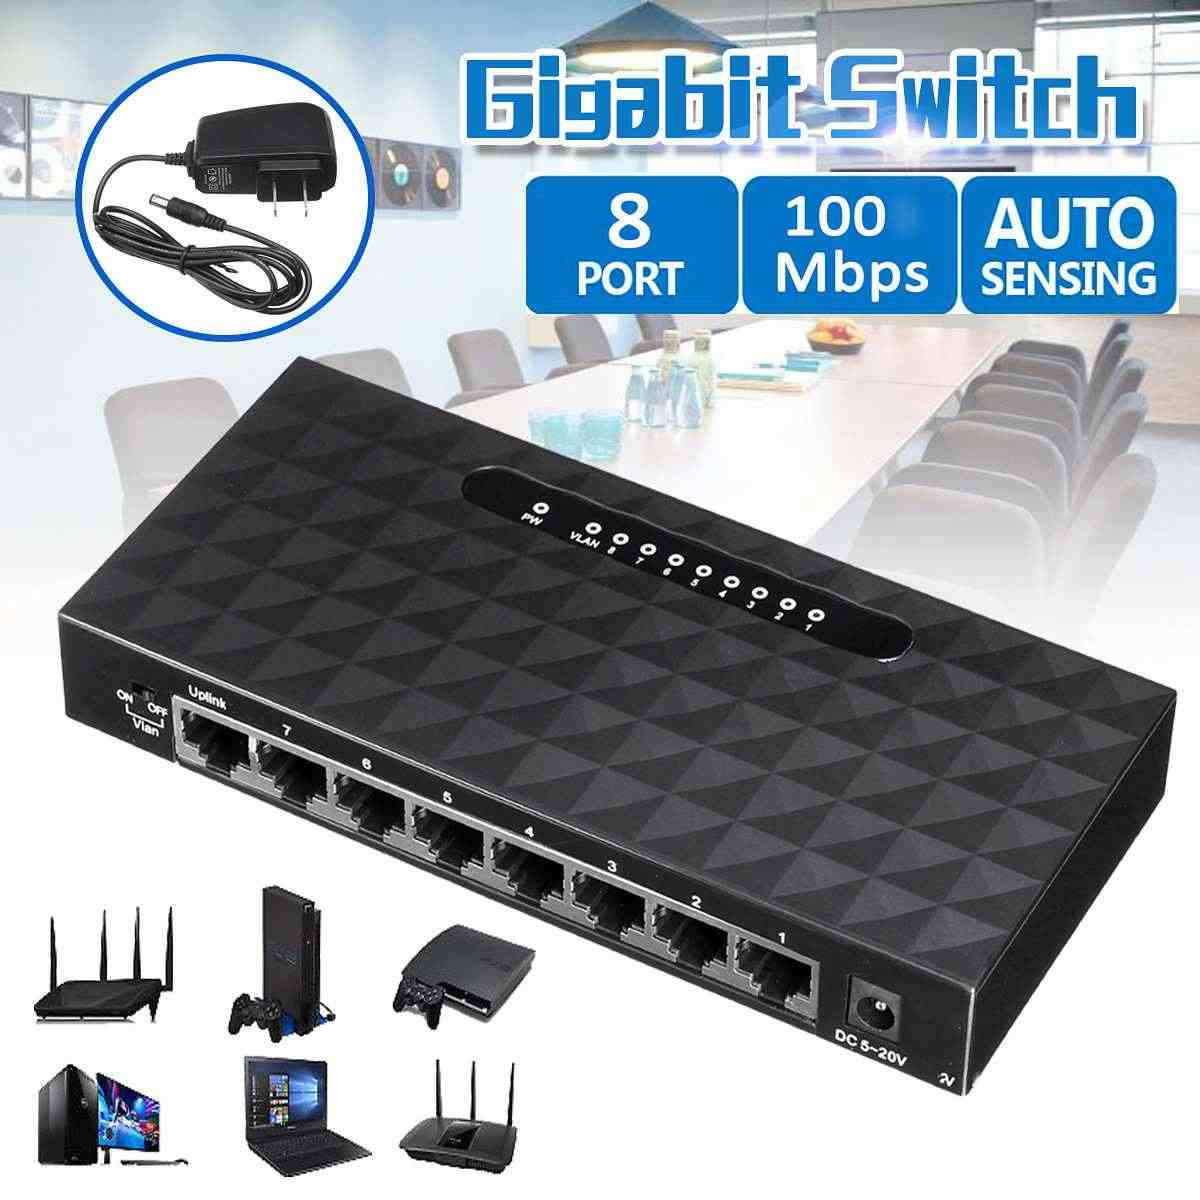 8-Puerto RJ45 10/100/1000 Mbps nos enchufe de red Gigabit Ethernet Hub Switch Lan adaptador para conmutador Ethernet rápido Modems